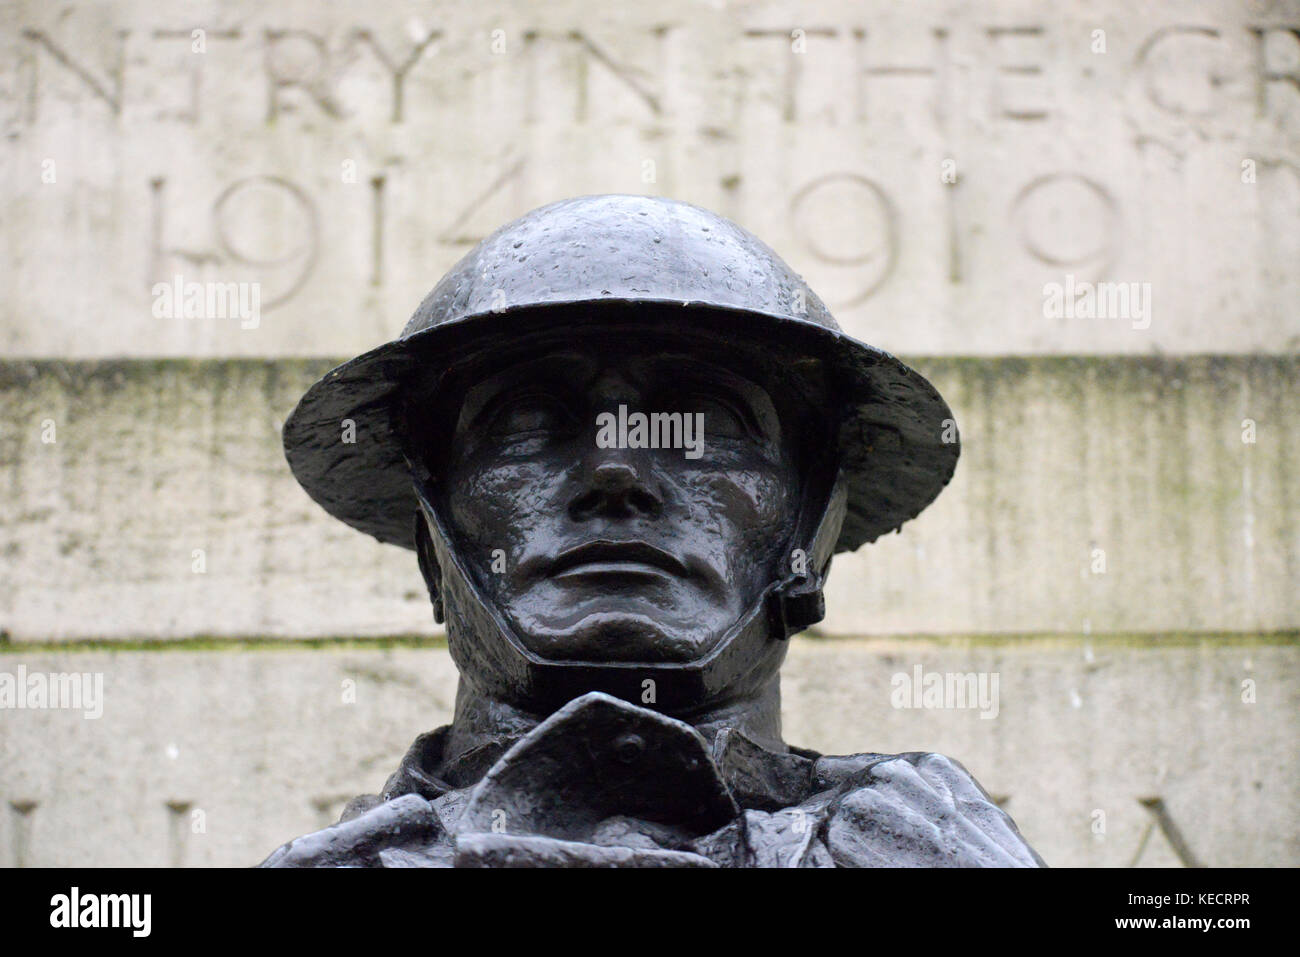 Bronze British Army soldier statue on Royal Artillery Memorial Hyde Park Corner, London. Rain dripping from helmet. - Stock Image